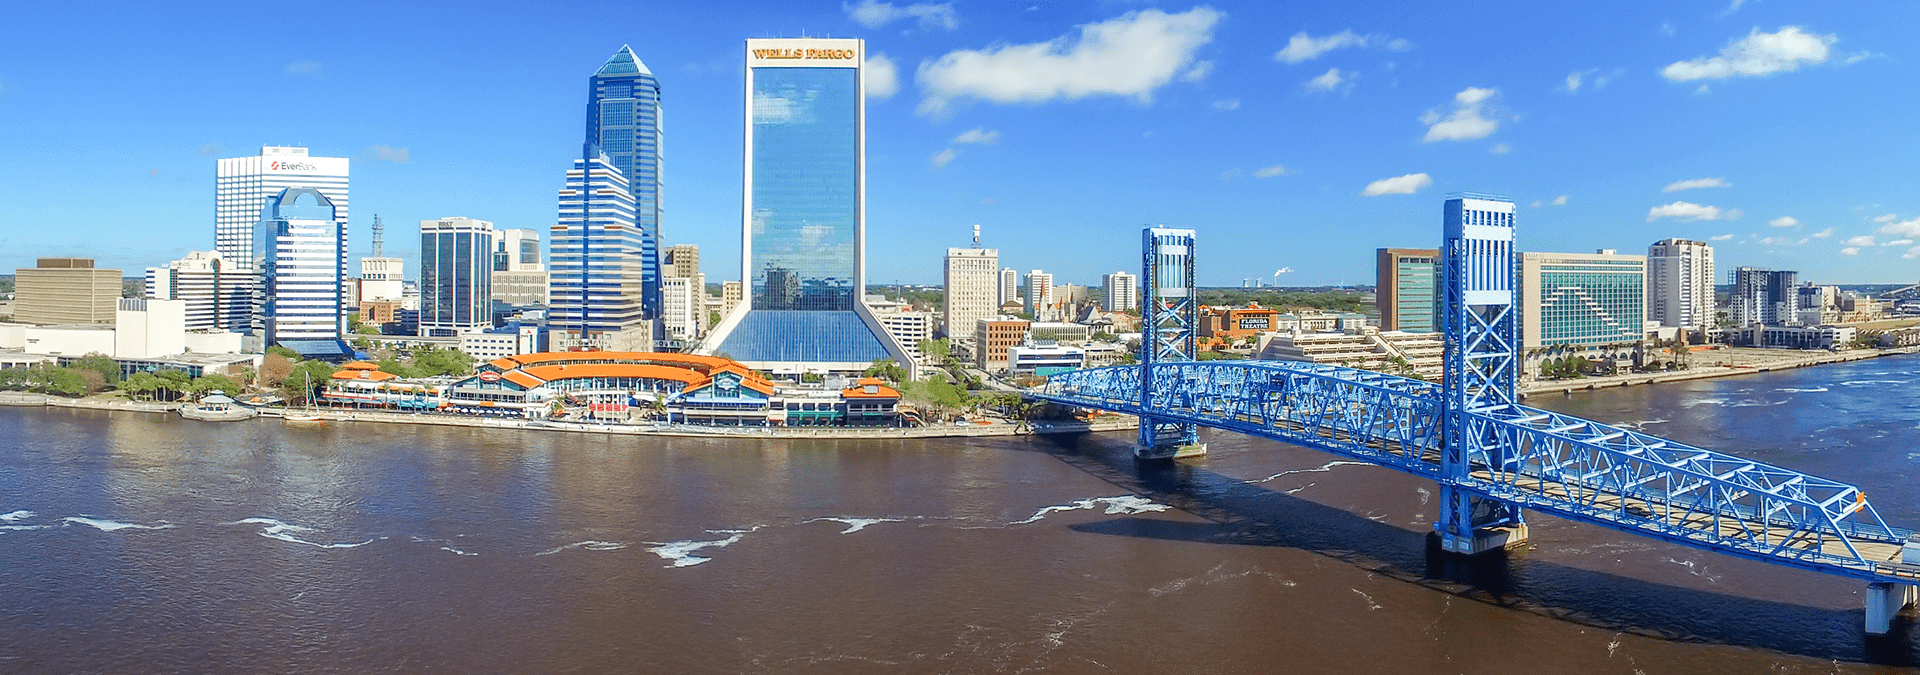 aerial view of jacksonville florida